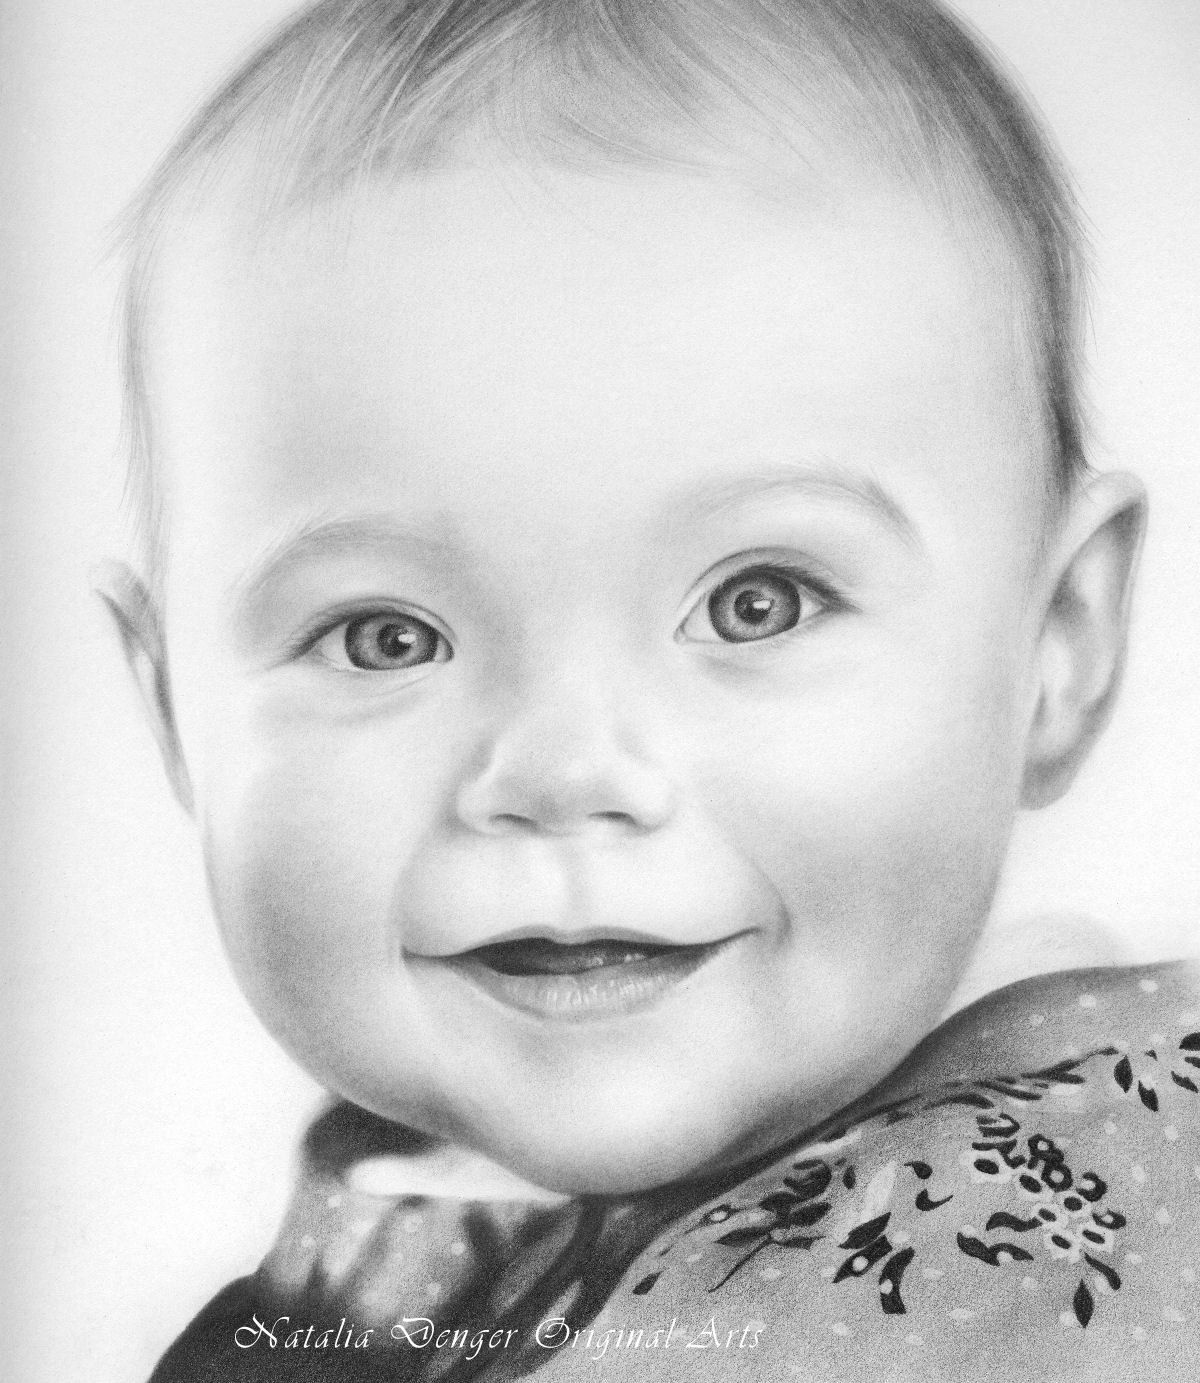 how to draw a real baby baby pencil drawing realistic portrait pencil sketch real baby how to draw a